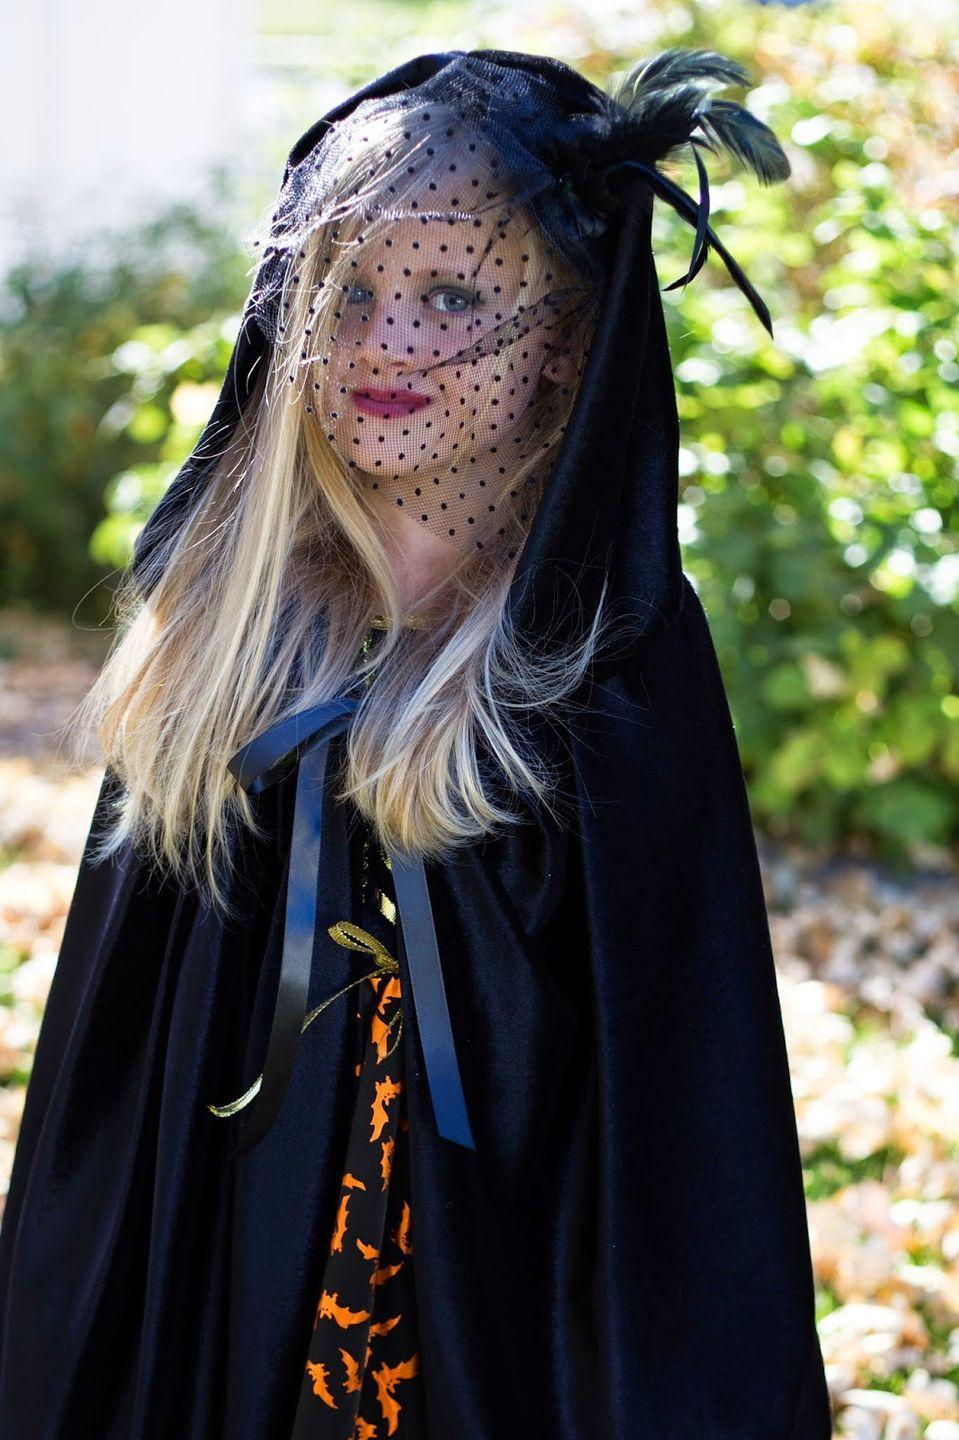 """<p>A dramatic cloak and birdcage veil are the perfect finishing touch for this DIY witch costume.</p><p><strong>Get the tutorial at <a href=""""http://www.doityourselfdivas.com/2014/10/diy-little-girl-witch-costume-for.html?m=1"""" rel=""""nofollow noopener"""" target=""""_blank"""" data-ylk=""""slk:Do It Yourself Divas"""" class=""""link rapid-noclick-resp"""">Do It Yourself Divas</a>. </strong></p><p><a class=""""link rapid-noclick-resp"""" href=""""https://www.amazon.com/Tinksky-Feather-Fascinator-Valentines-Accessory/dp/B01J5AO5CY/ref=sr_1_8?tag=syn-yahoo-20&ascsubtag=%5Bartid%7C10050.g.28304812%5Bsrc%7Cyahoo-us"""" rel=""""nofollow noopener"""" target=""""_blank"""" data-ylk=""""slk:SHOP BIRDCAGE VEILS"""">SHOP BIRDCAGE VEILS</a></p>"""